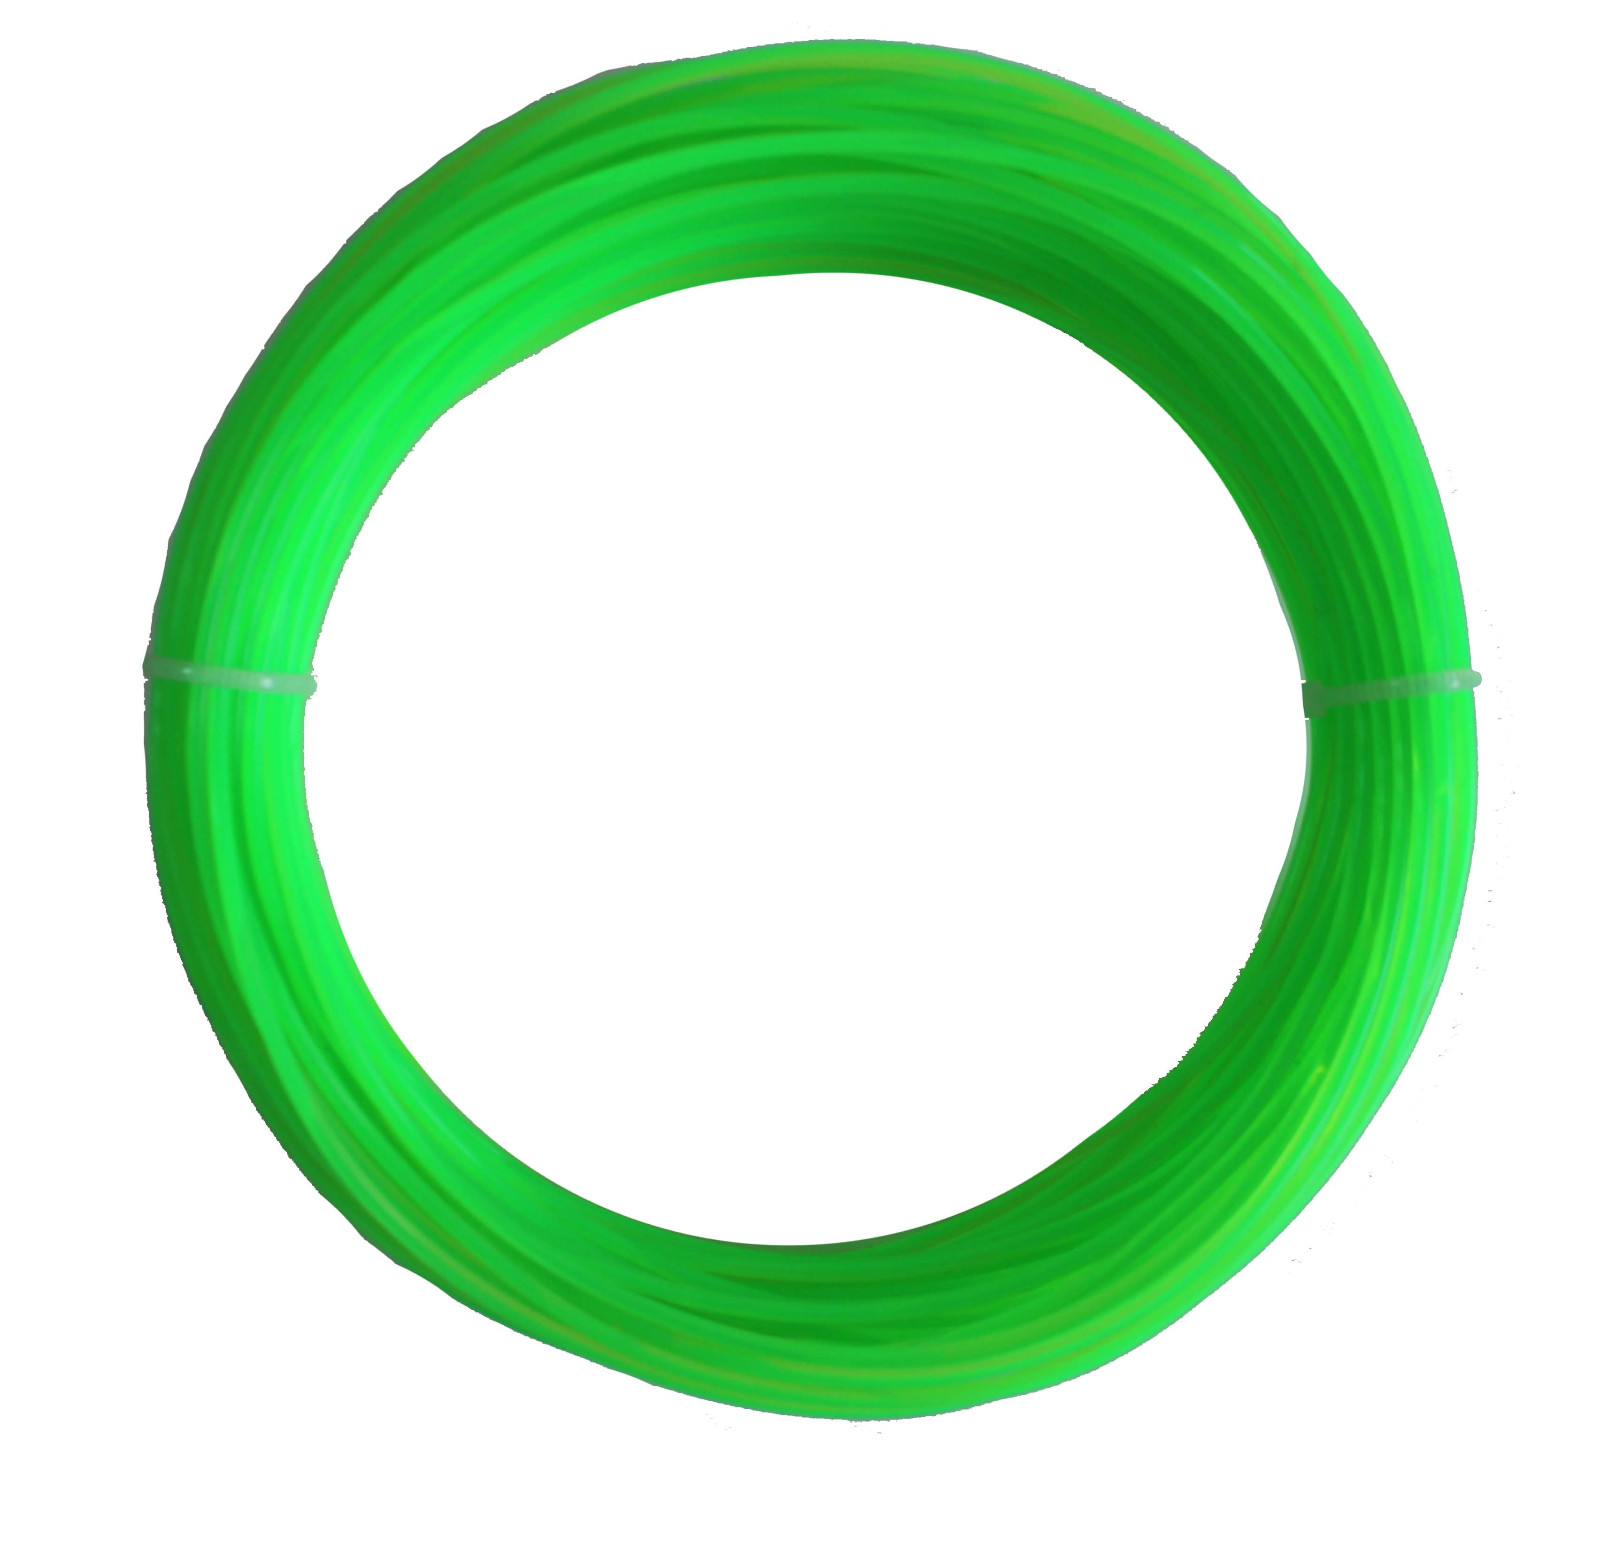 TOP QUALITY 1PC GREEN 1.75mm Fluorescence Filament ABS Modeling Stereoscopic For 3D Printer Pen UNIQUE DESIGN JUN28(China (Mainland))